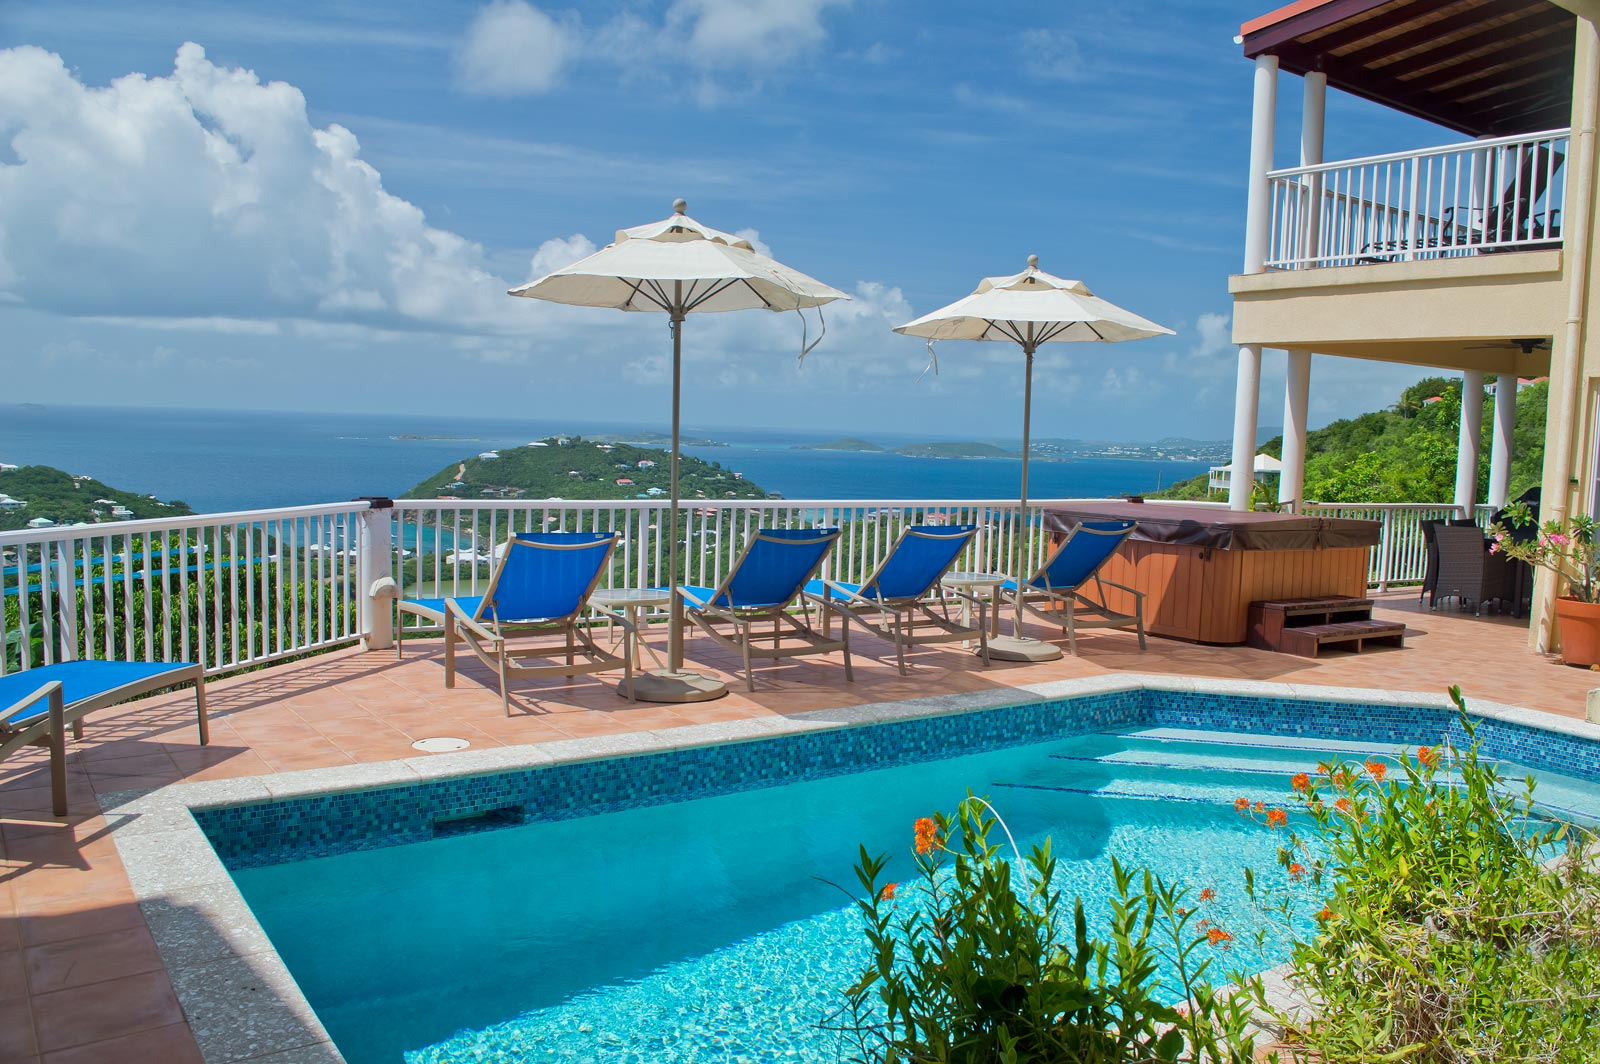 Villa Madeira, St John pool and deck view